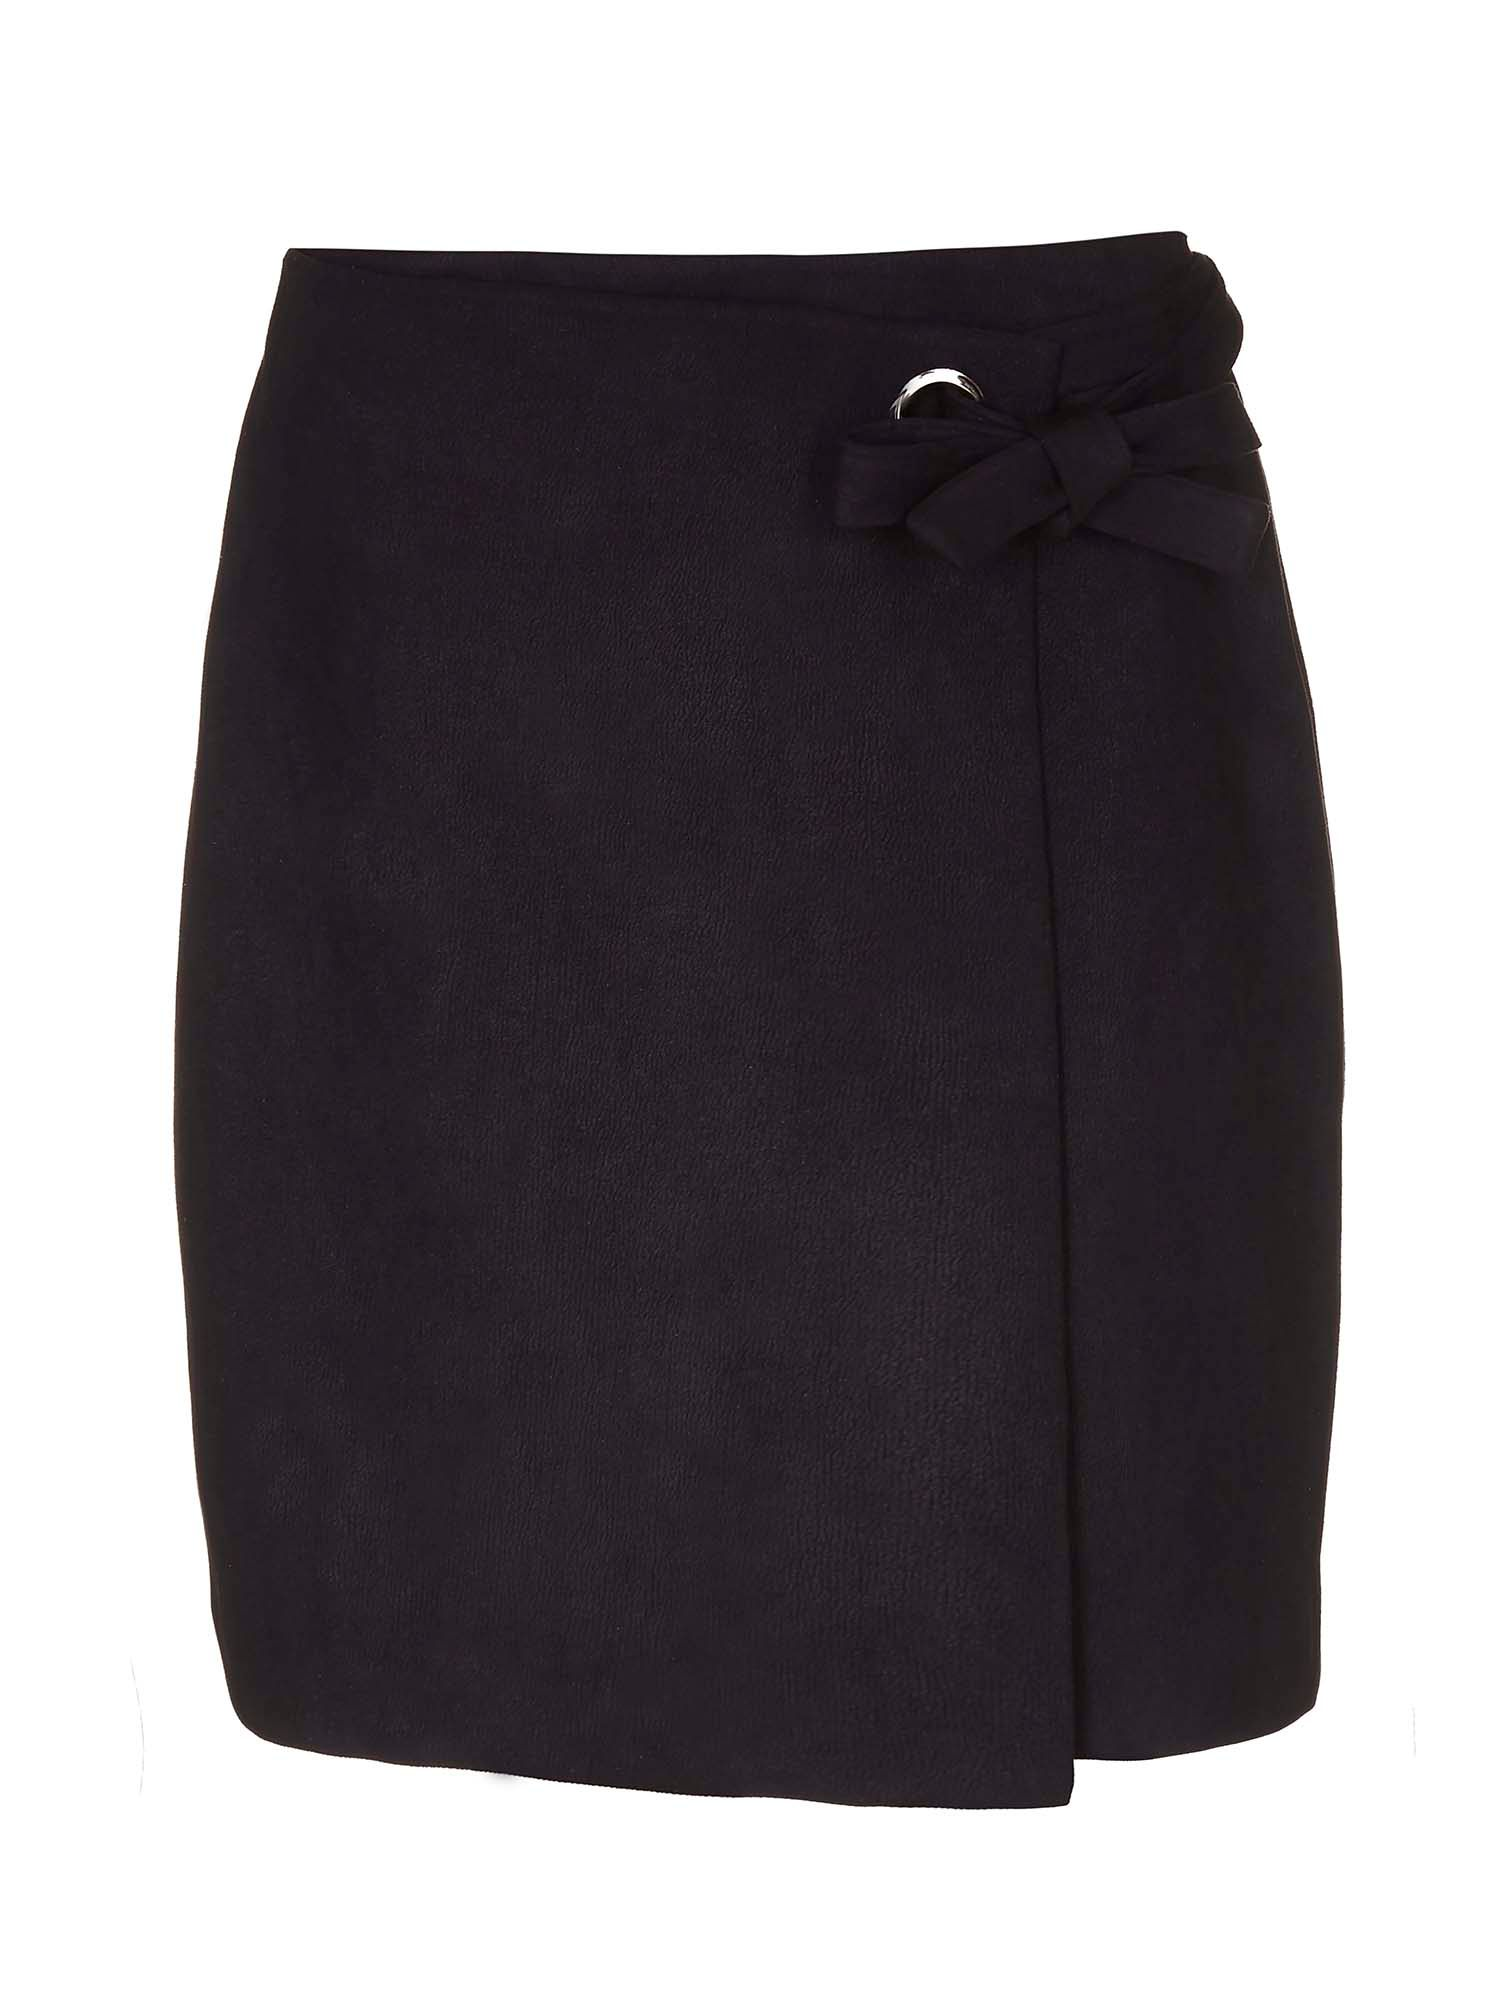 Yumi Wrap Skirt with Bow, Black